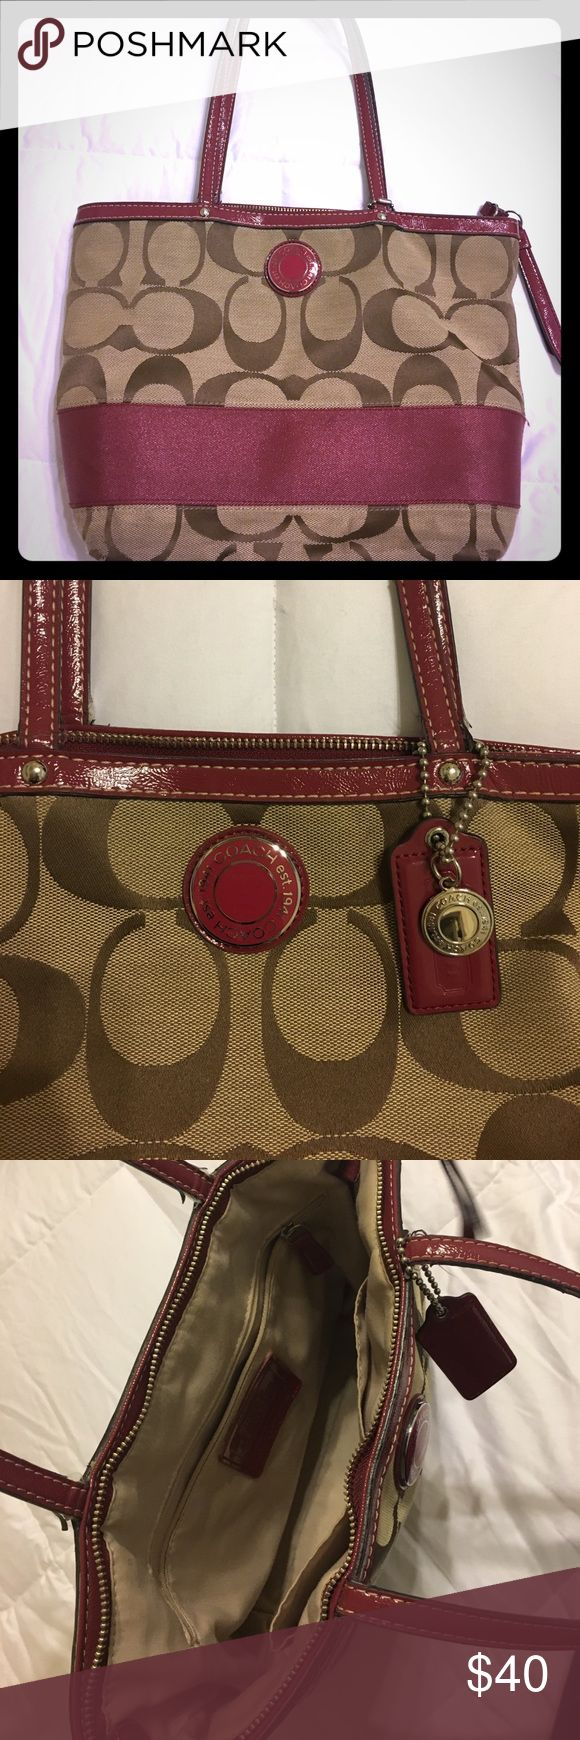 Coach Shoulder Purse Tan and Raspberry Coach purse.  3 interior pockets, one zippered.  1 outside pocket.  Good condition with some normal wear on handles. (Pictured) Very clean. Coach Bags Shoulder Bags